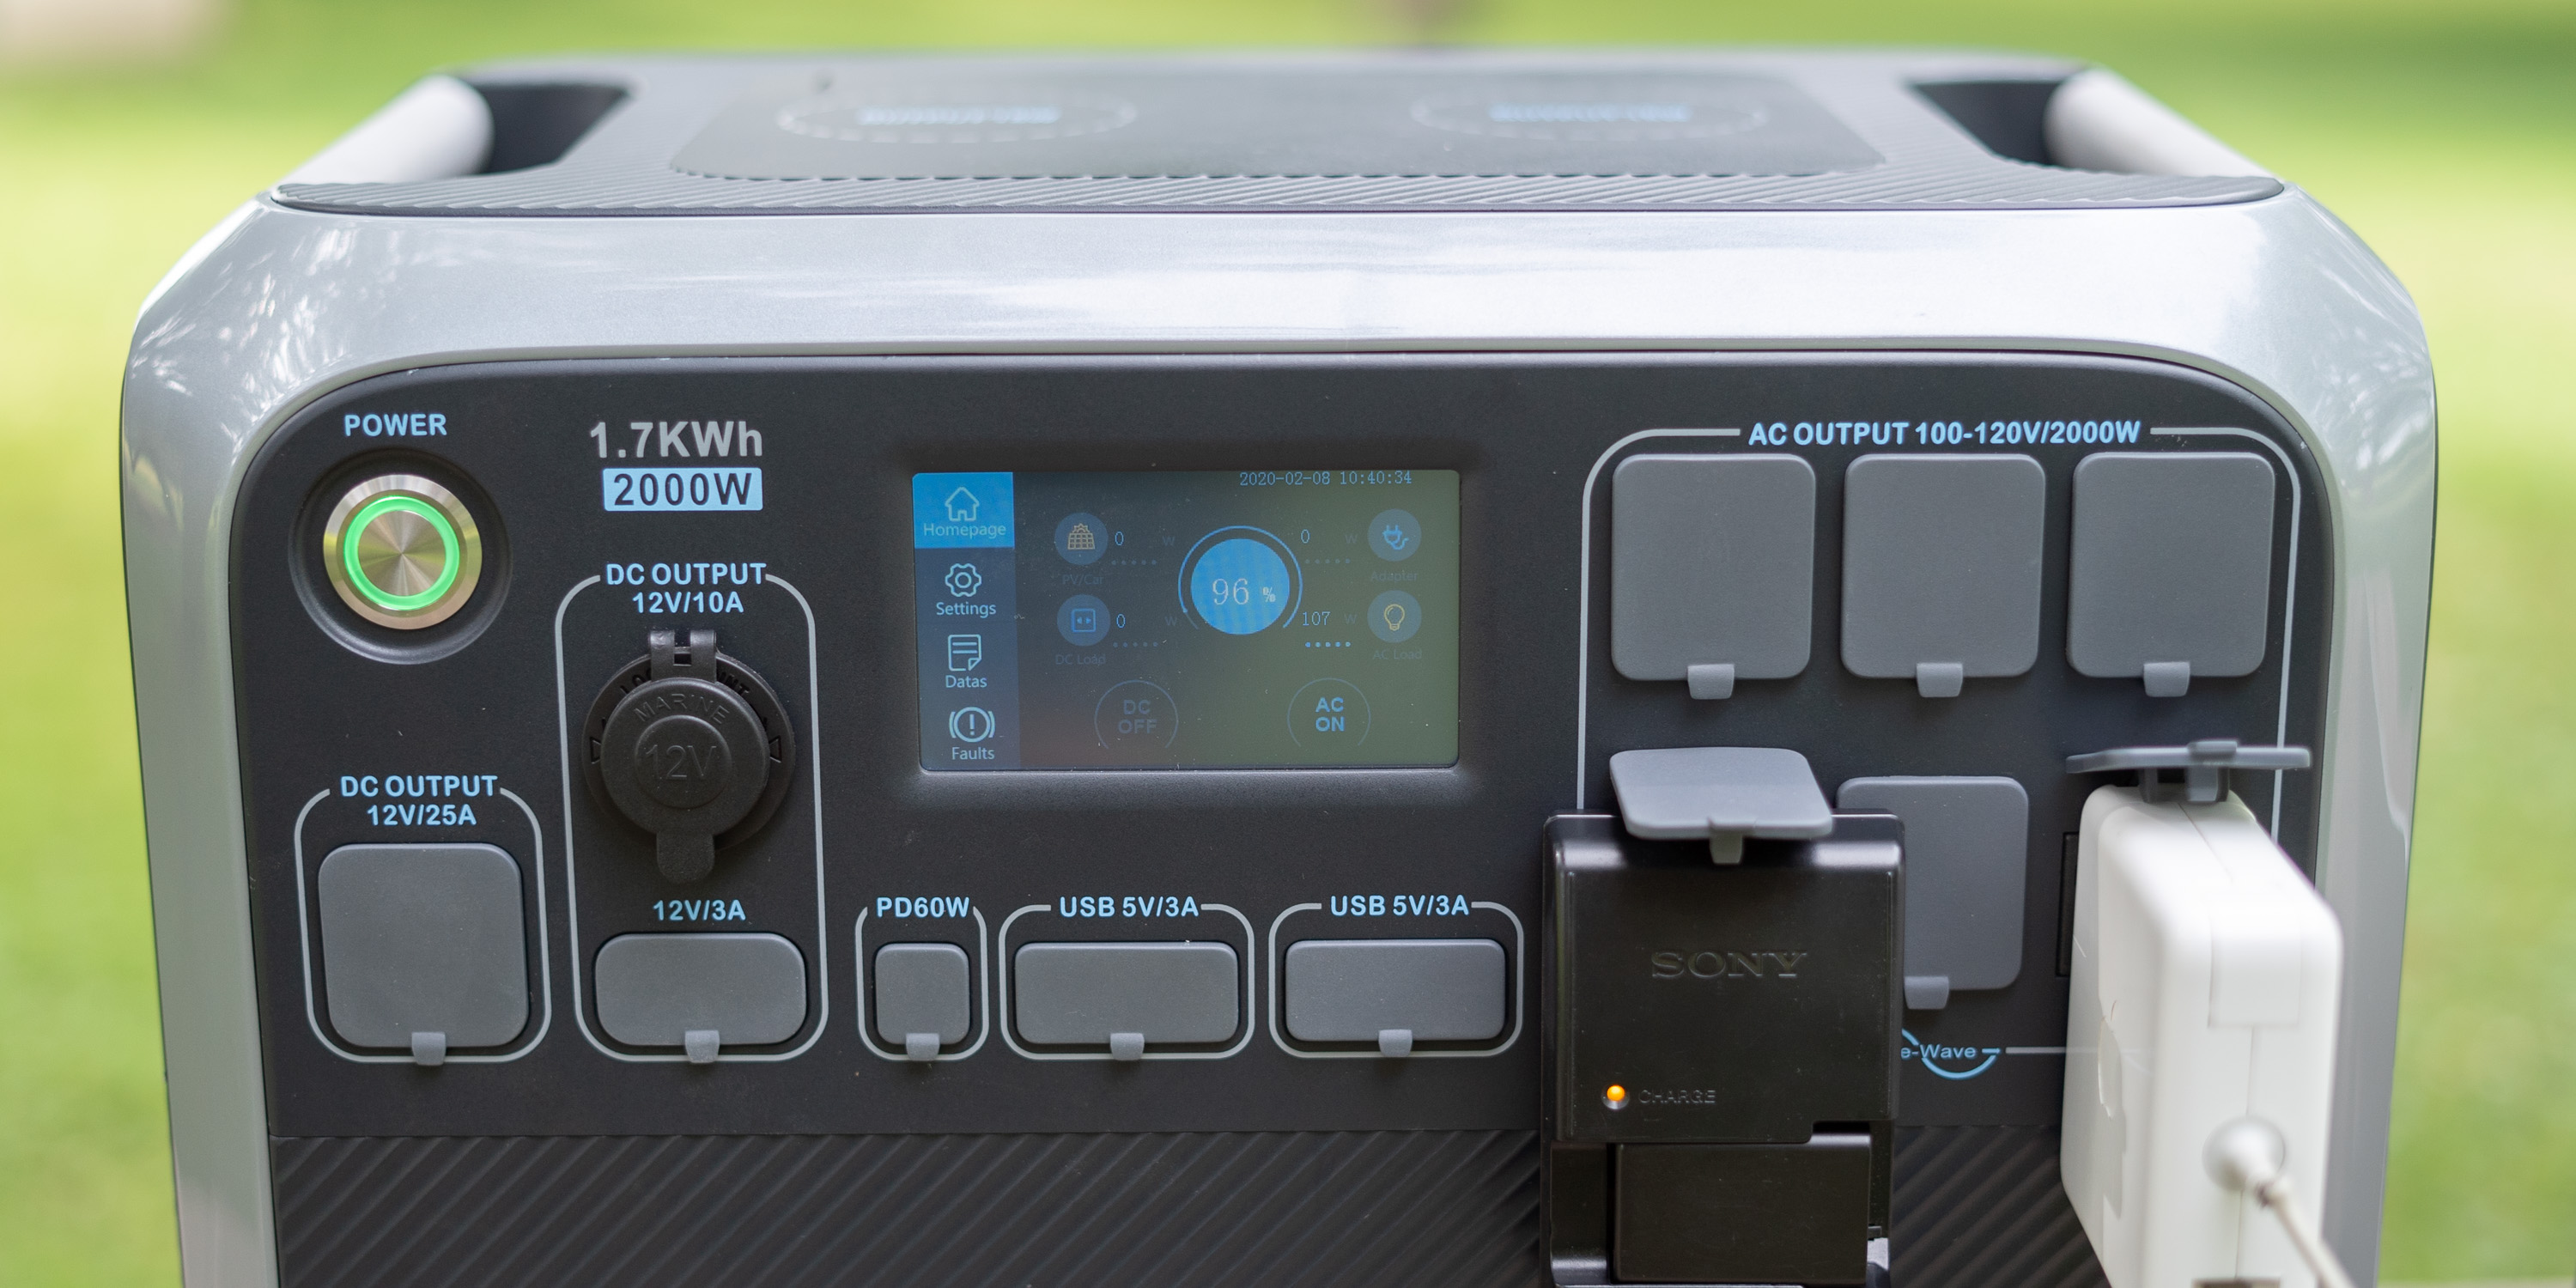 Front outputs on the Bluetti AC200 power station